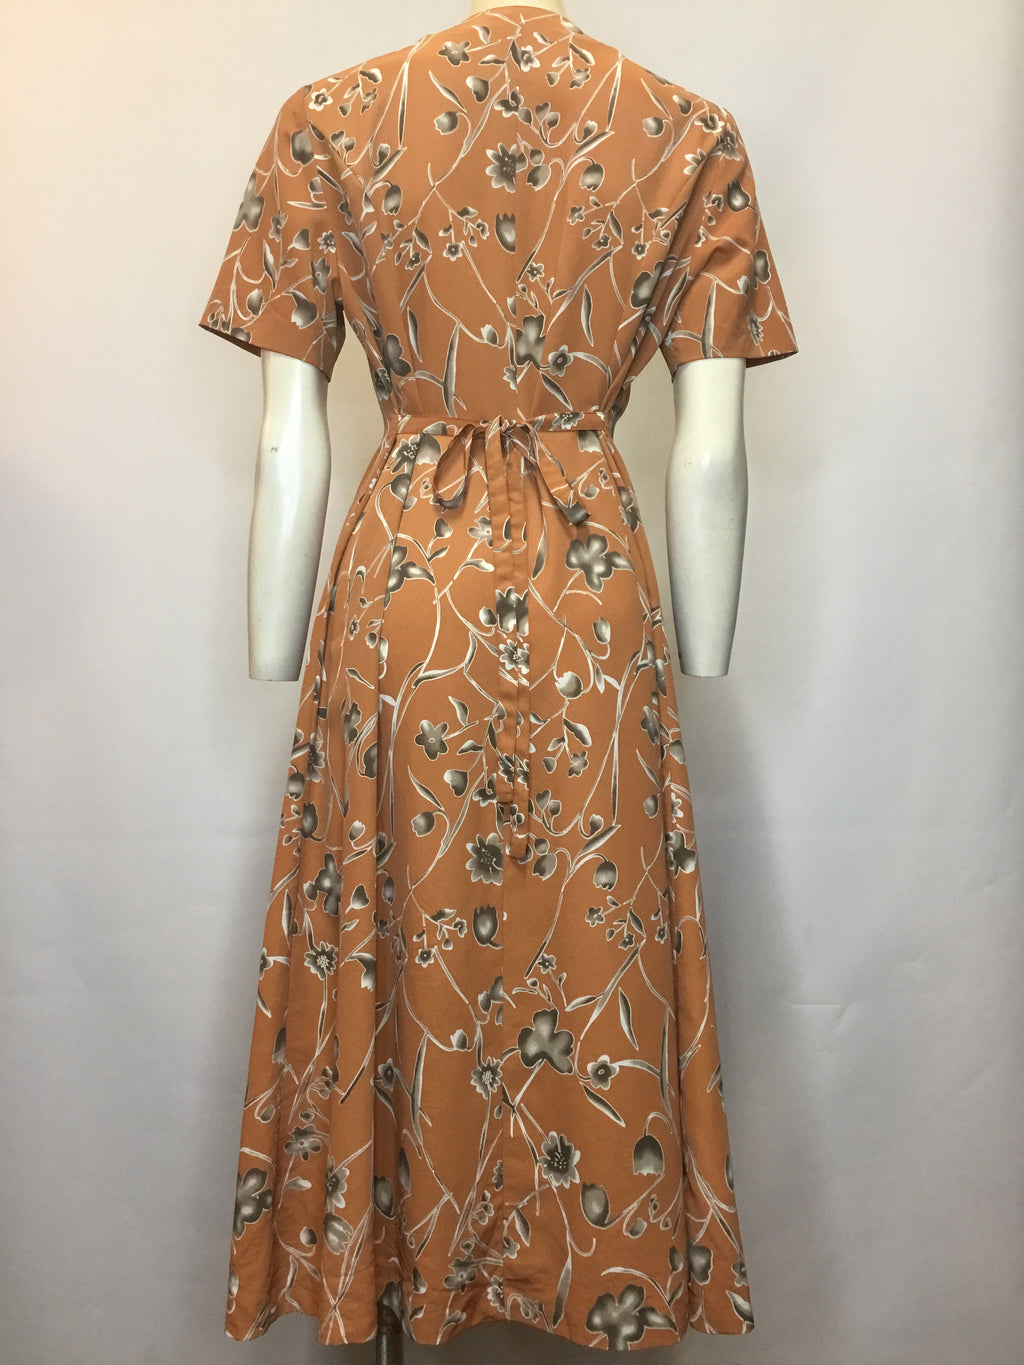 Blooms of Orange Dress - AS IS - odd button